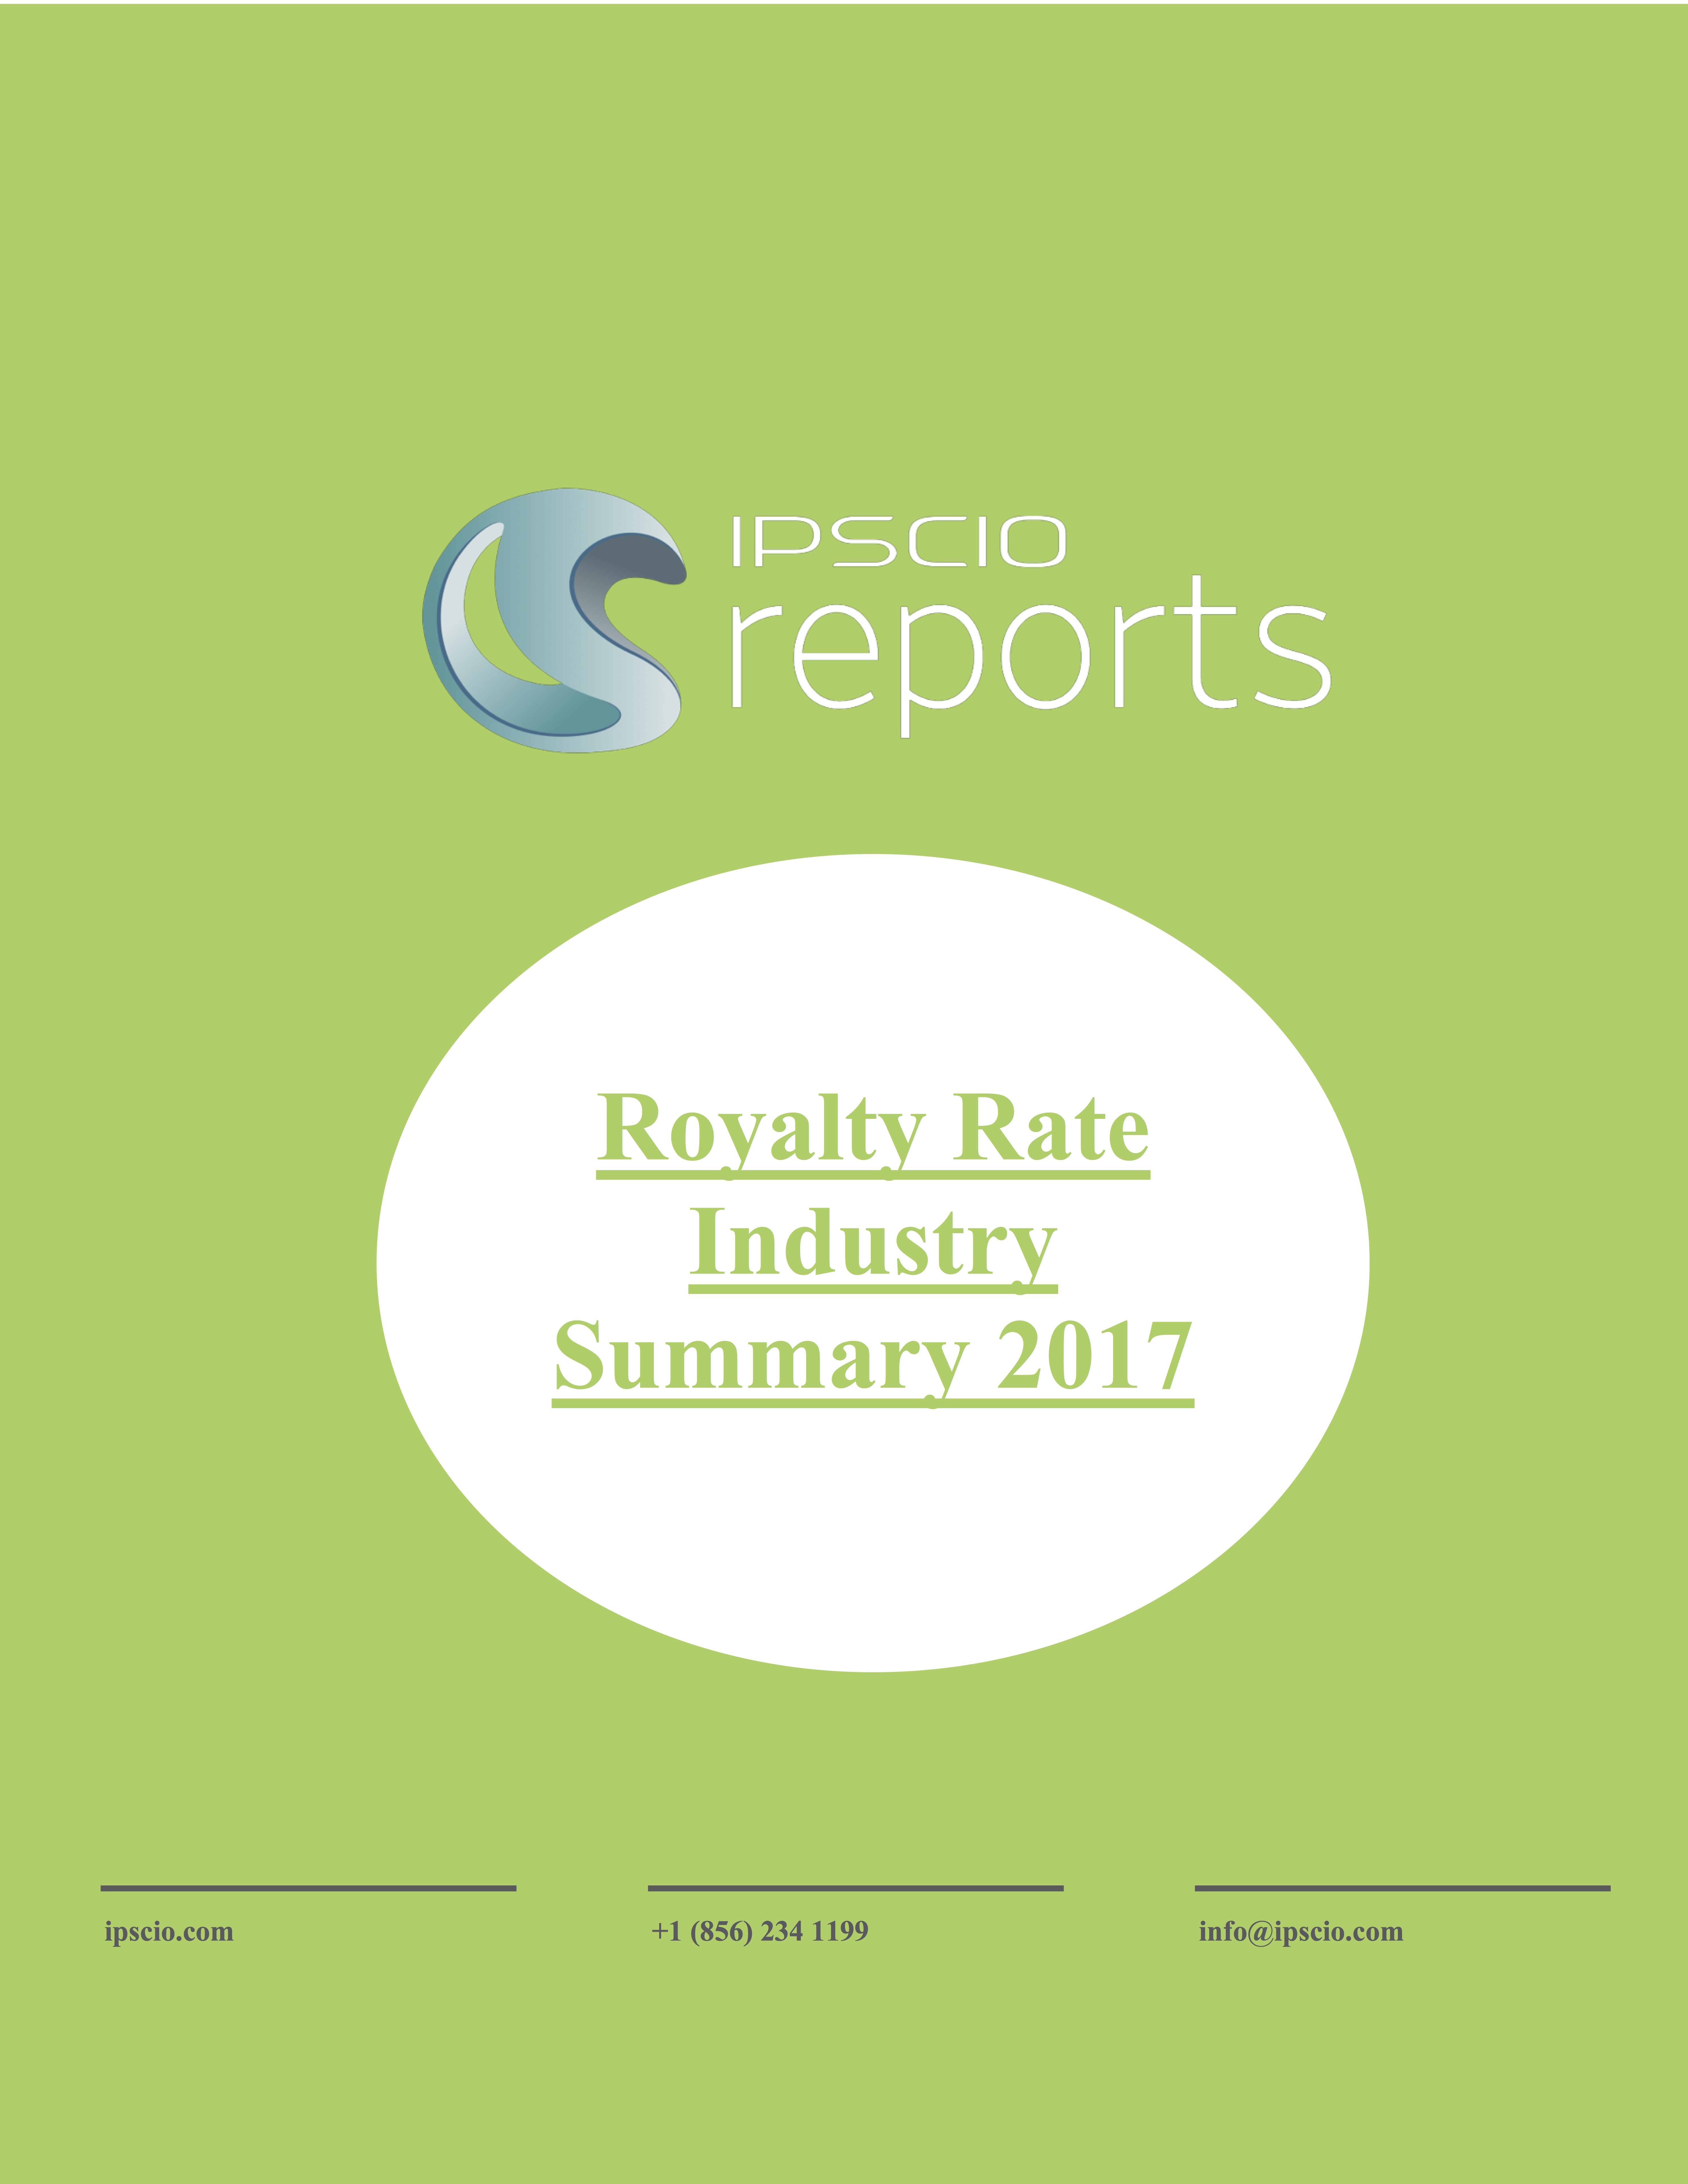 Royalty Rate Industry Summary 2017